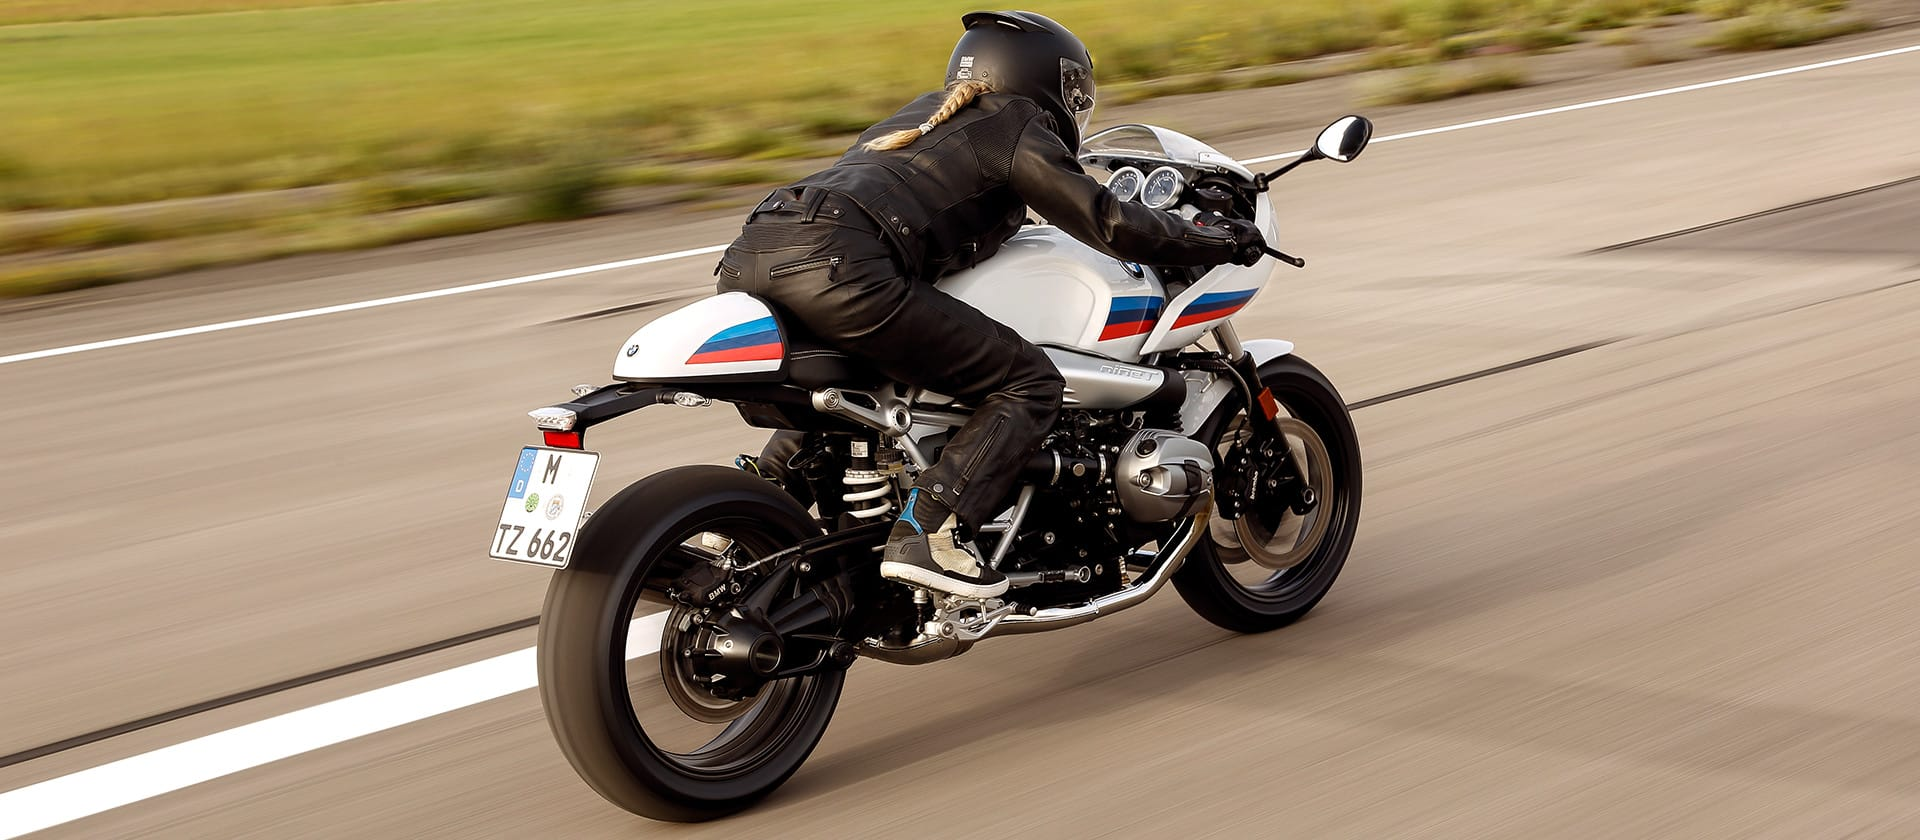 BMW R nineT racer shown from behind